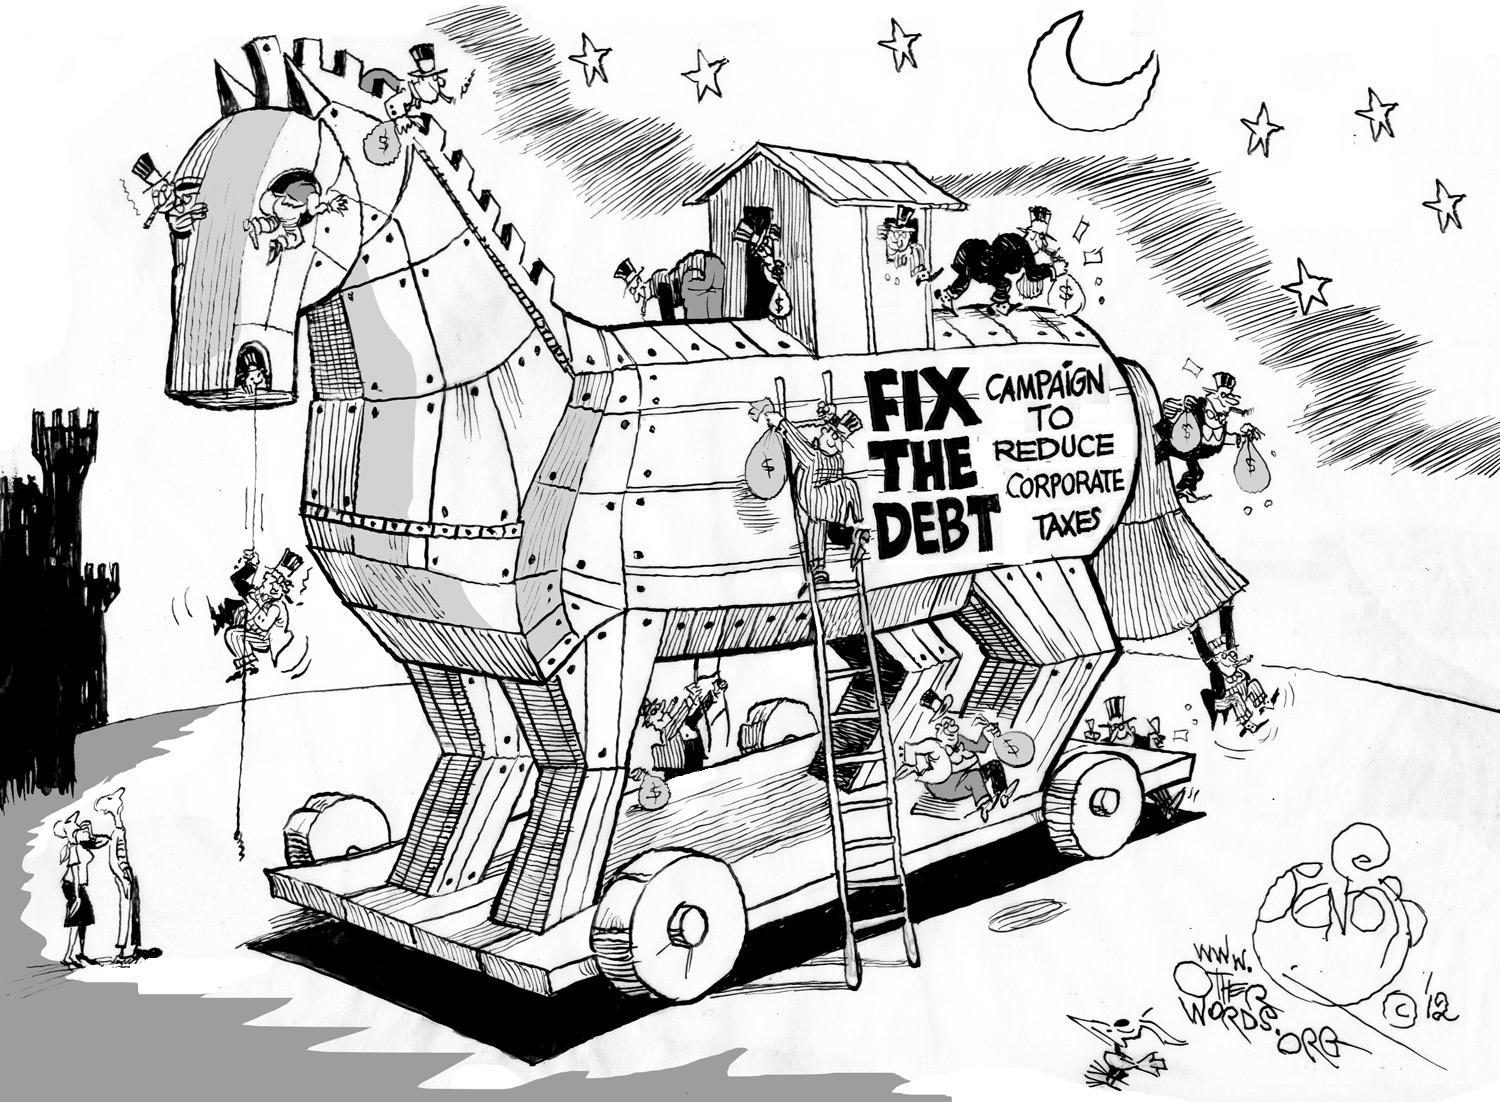 fix-the-debt-ruse-cartoon11